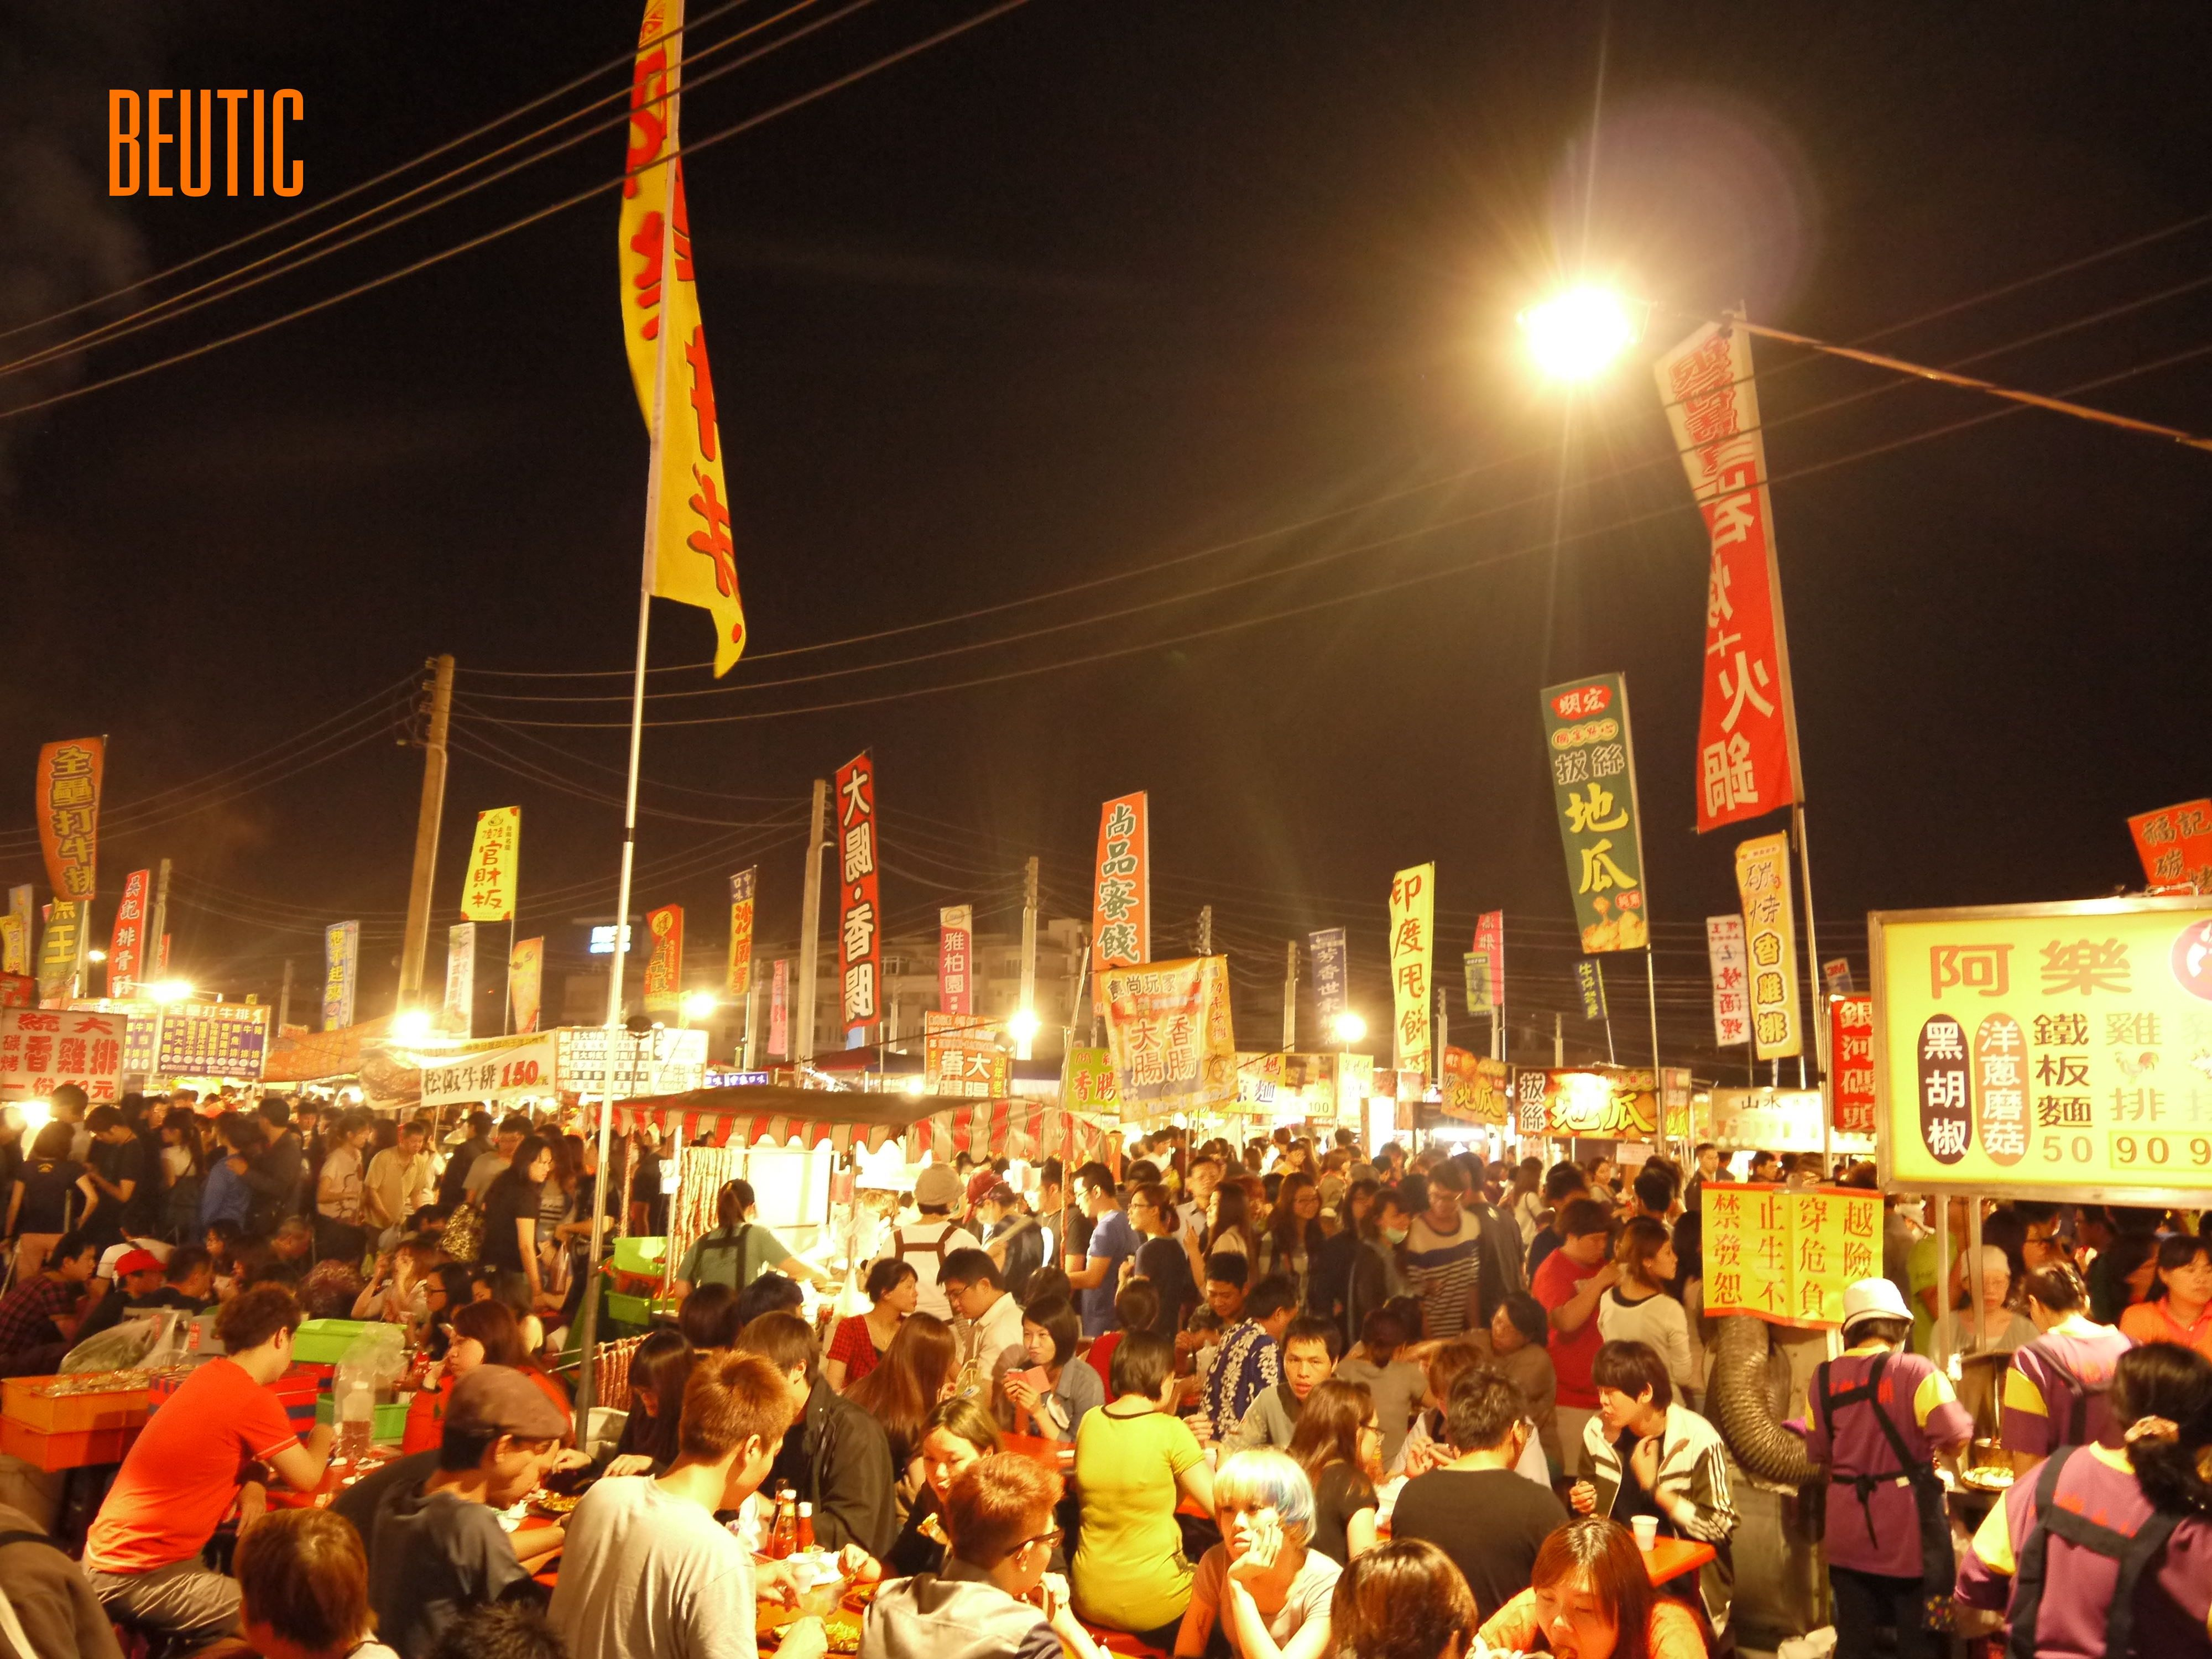 Flower garden night market | This is the largest night market in Tainan, and the largest fully-outdoor night market in Taiwan. Visitors could come here and savor all kinds of local flavors which will definitely caters to every taste. Intersection between Haian Road, Sec. 3, and Hewei Rd. Sec.3. http://7630042.wix.com/beutic